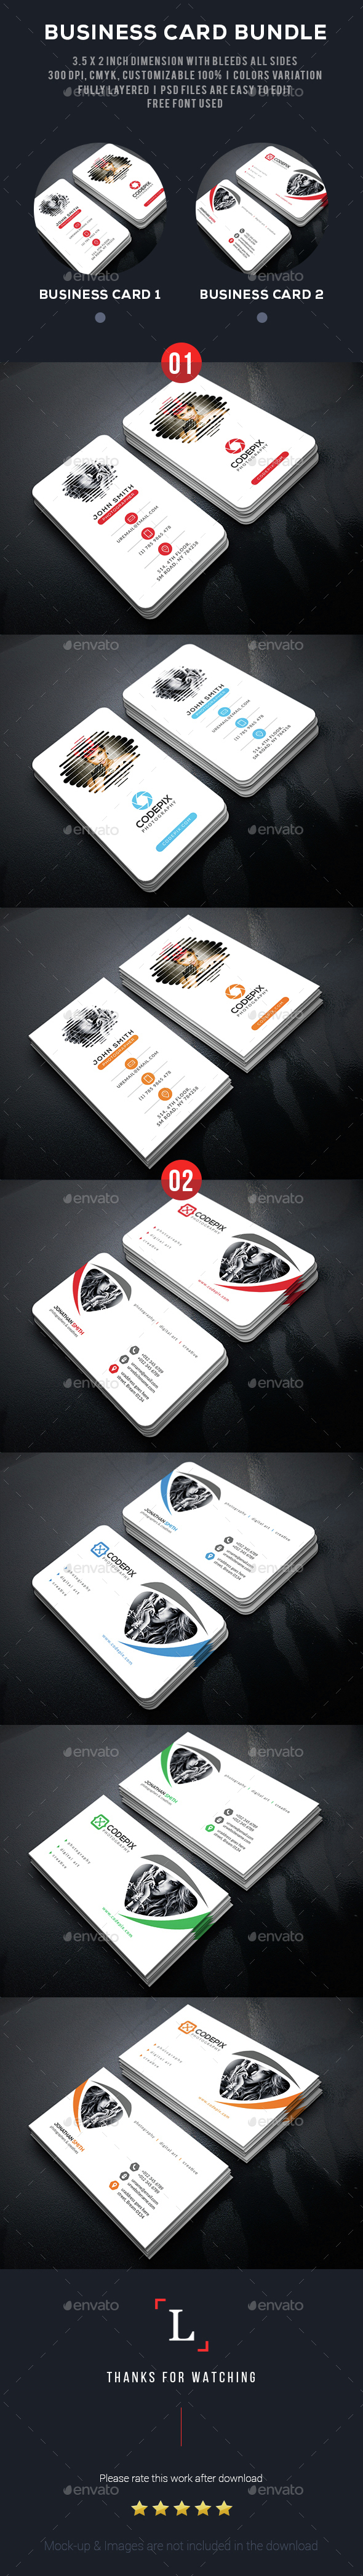 Clean Photography Business Card Bundle - Business Cards Print Templates